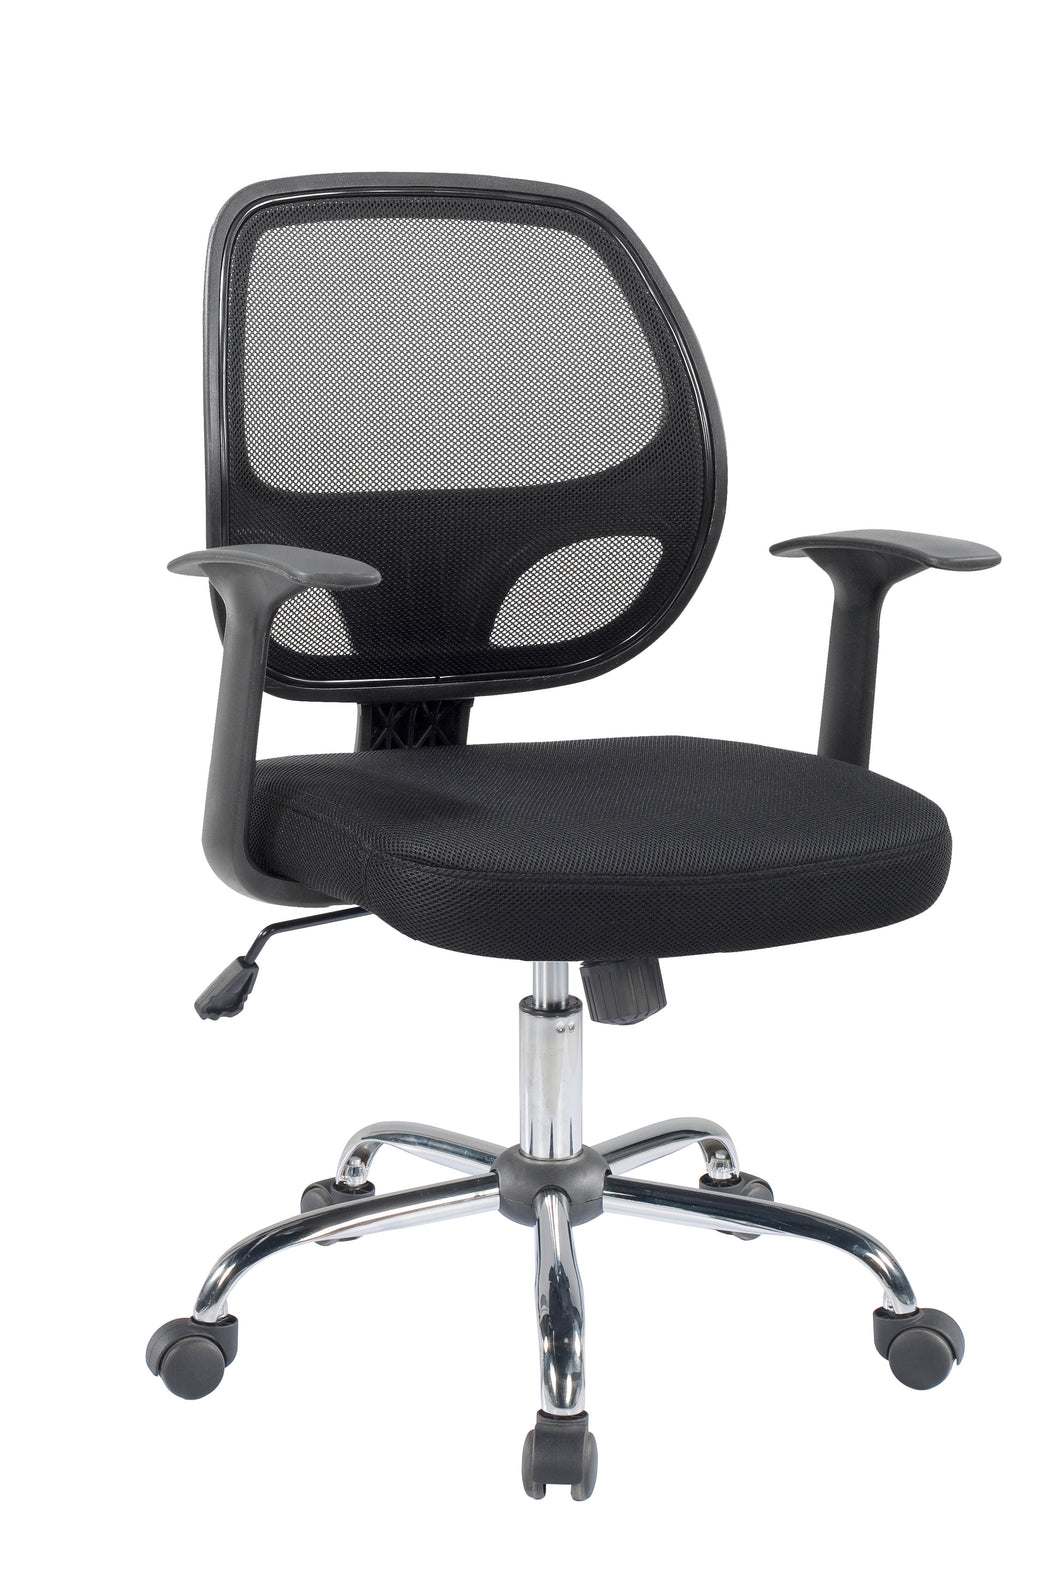 Ergonomic Mid back Office Chair Chrome base, Lumbar Arm Black padded Mesh Chair